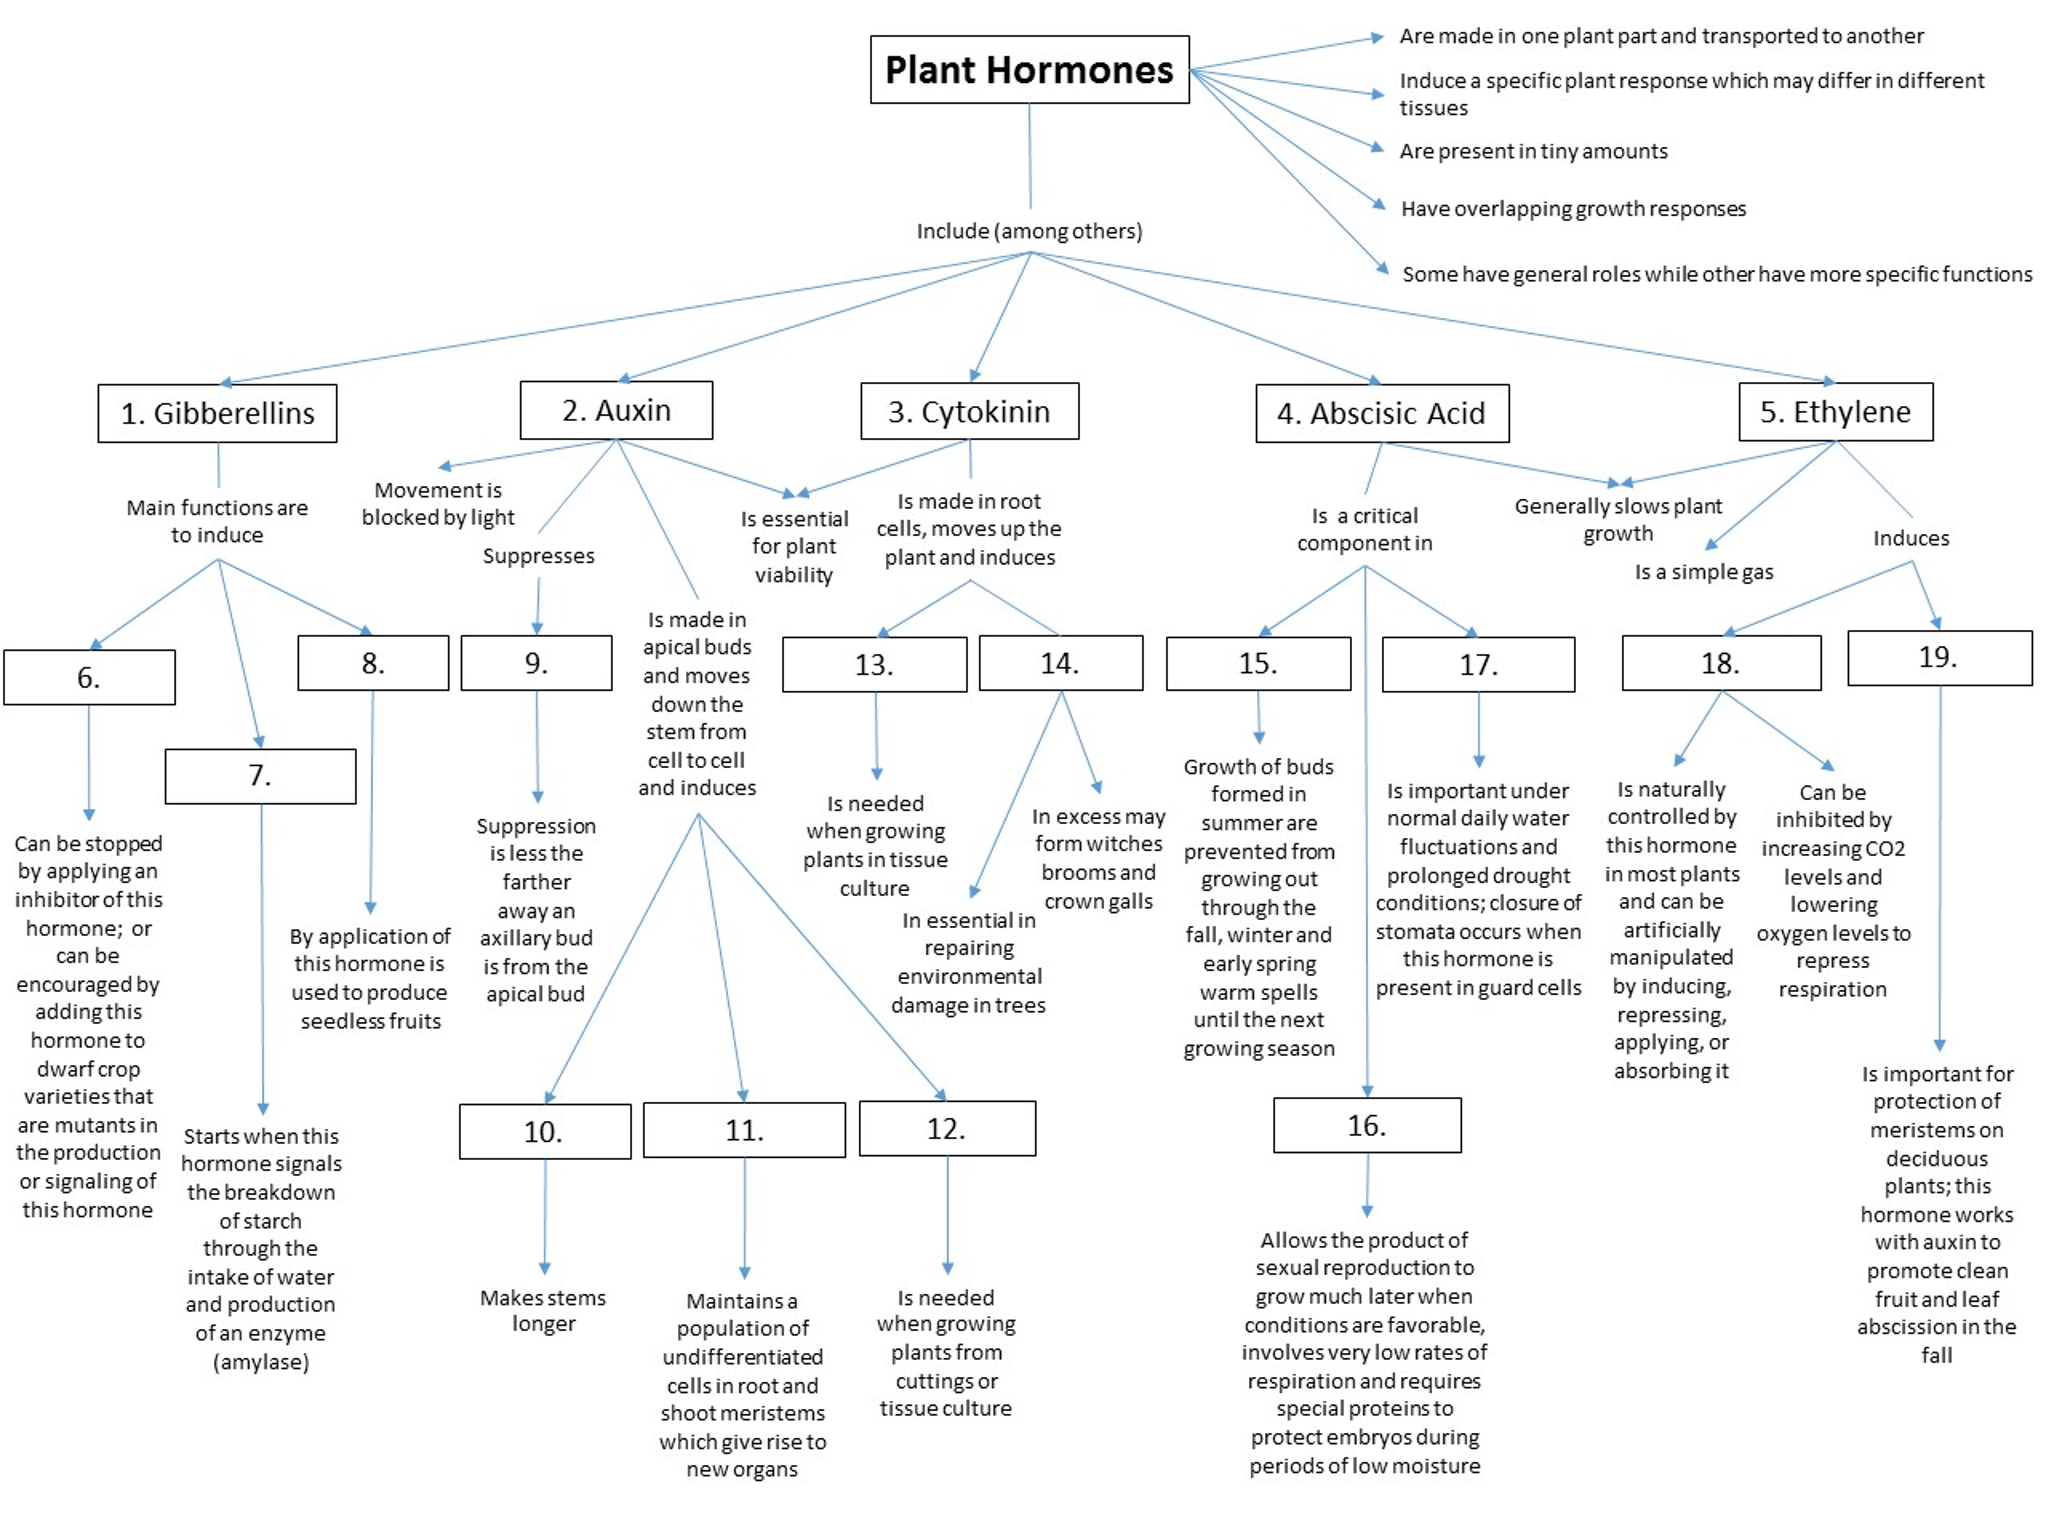 Hormone Concept Map.Solved Q1 Place The Correct Term In The Appropriate Locat